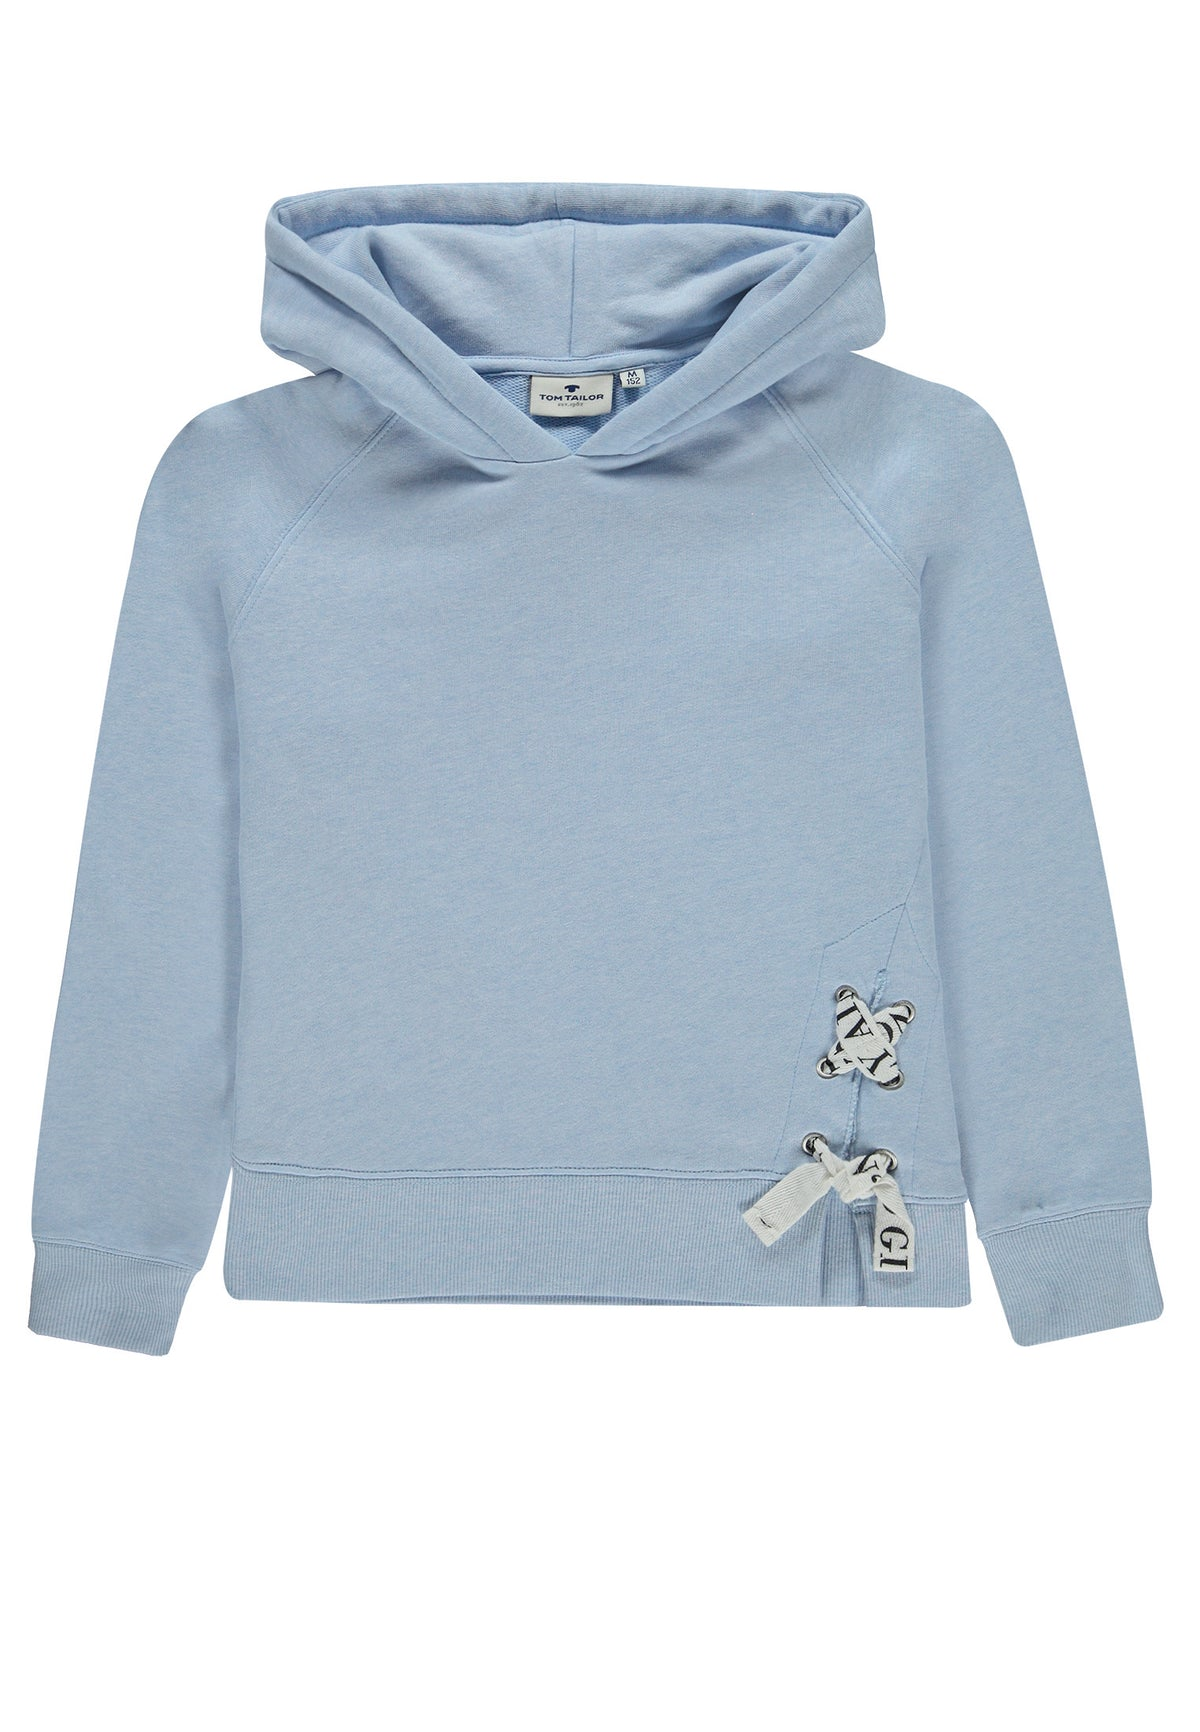 Cozy light weight sweatshirt